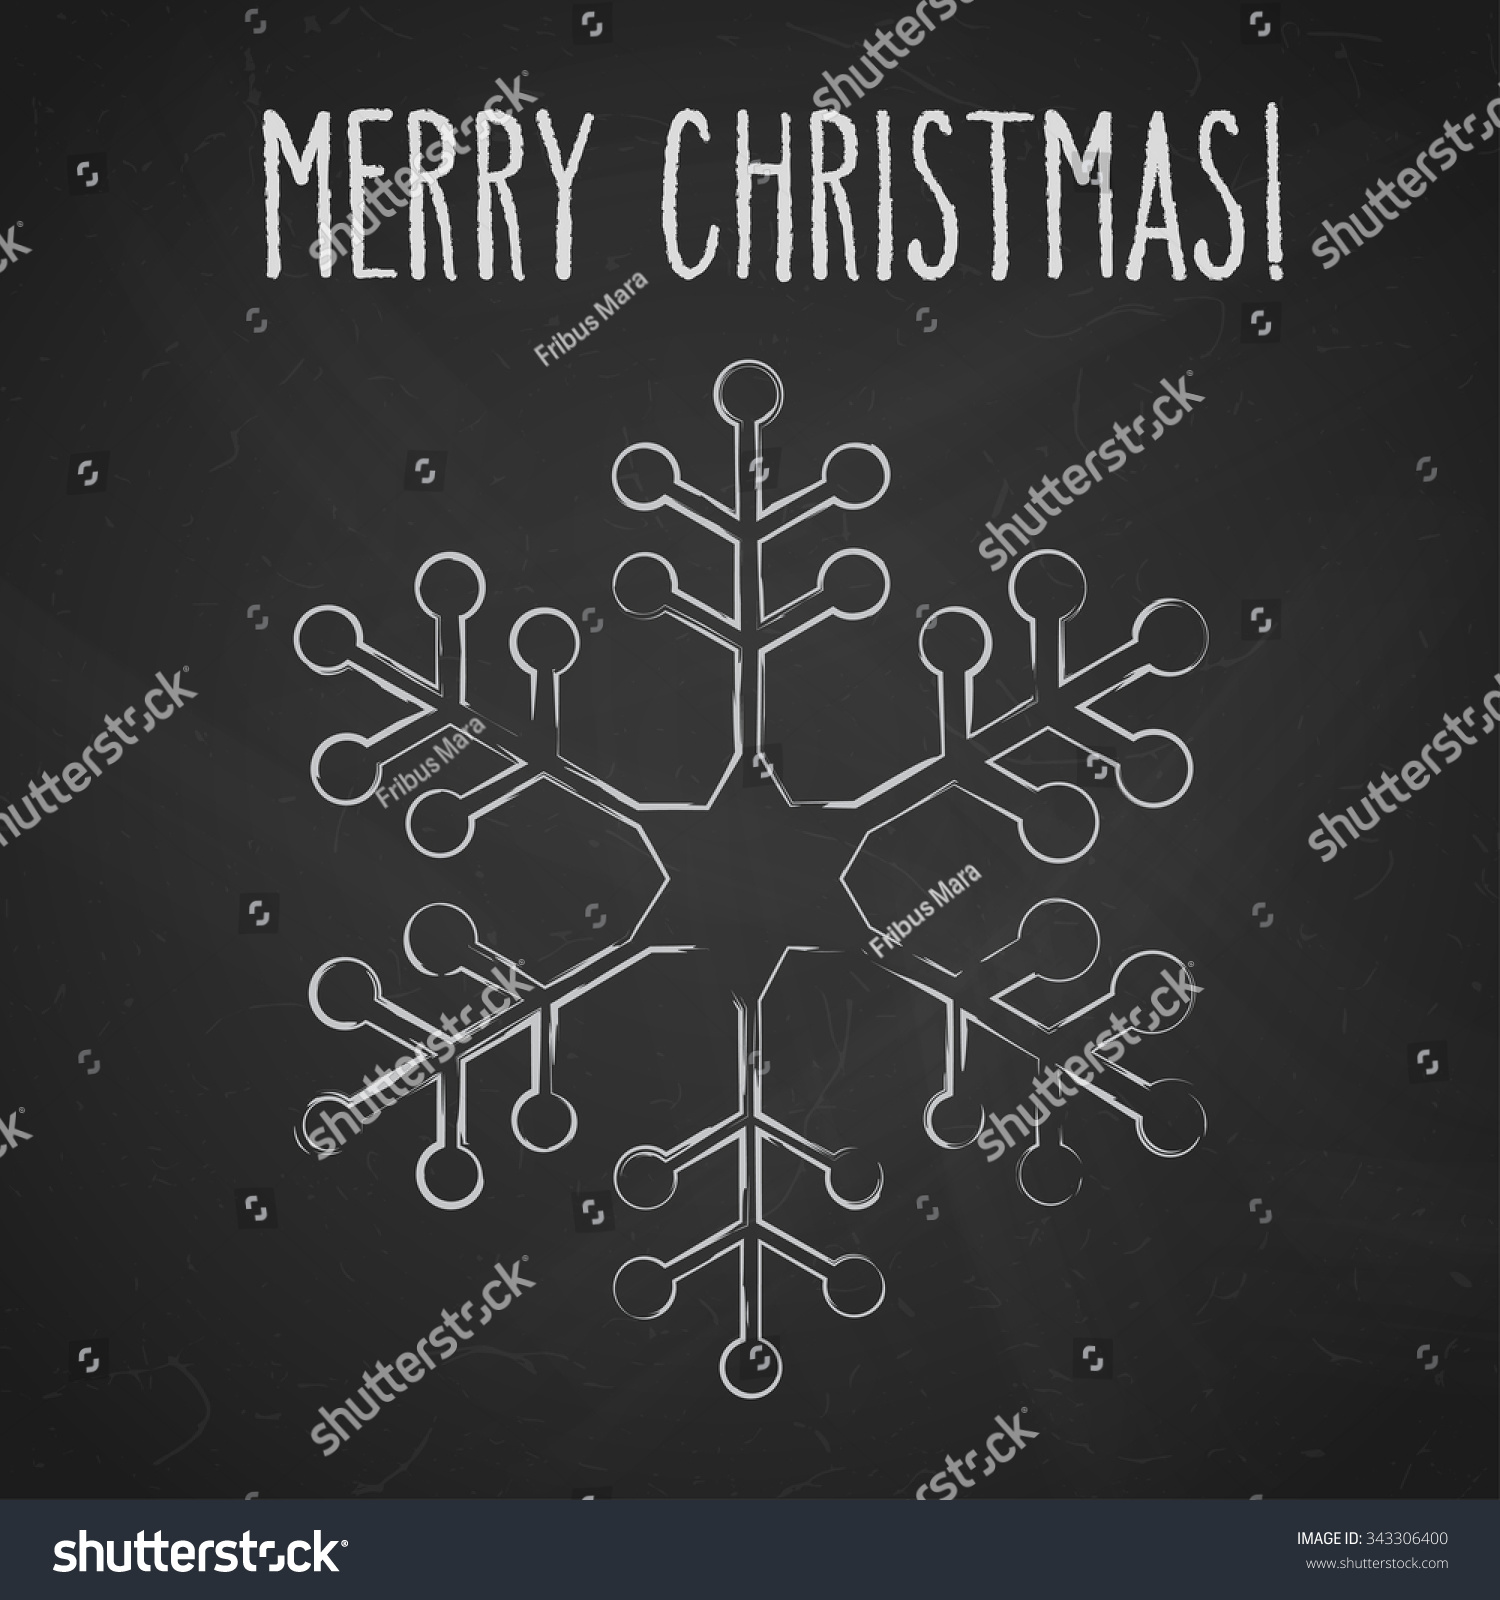 One Snowflake And Hand Written Christmas Greetings Over Black